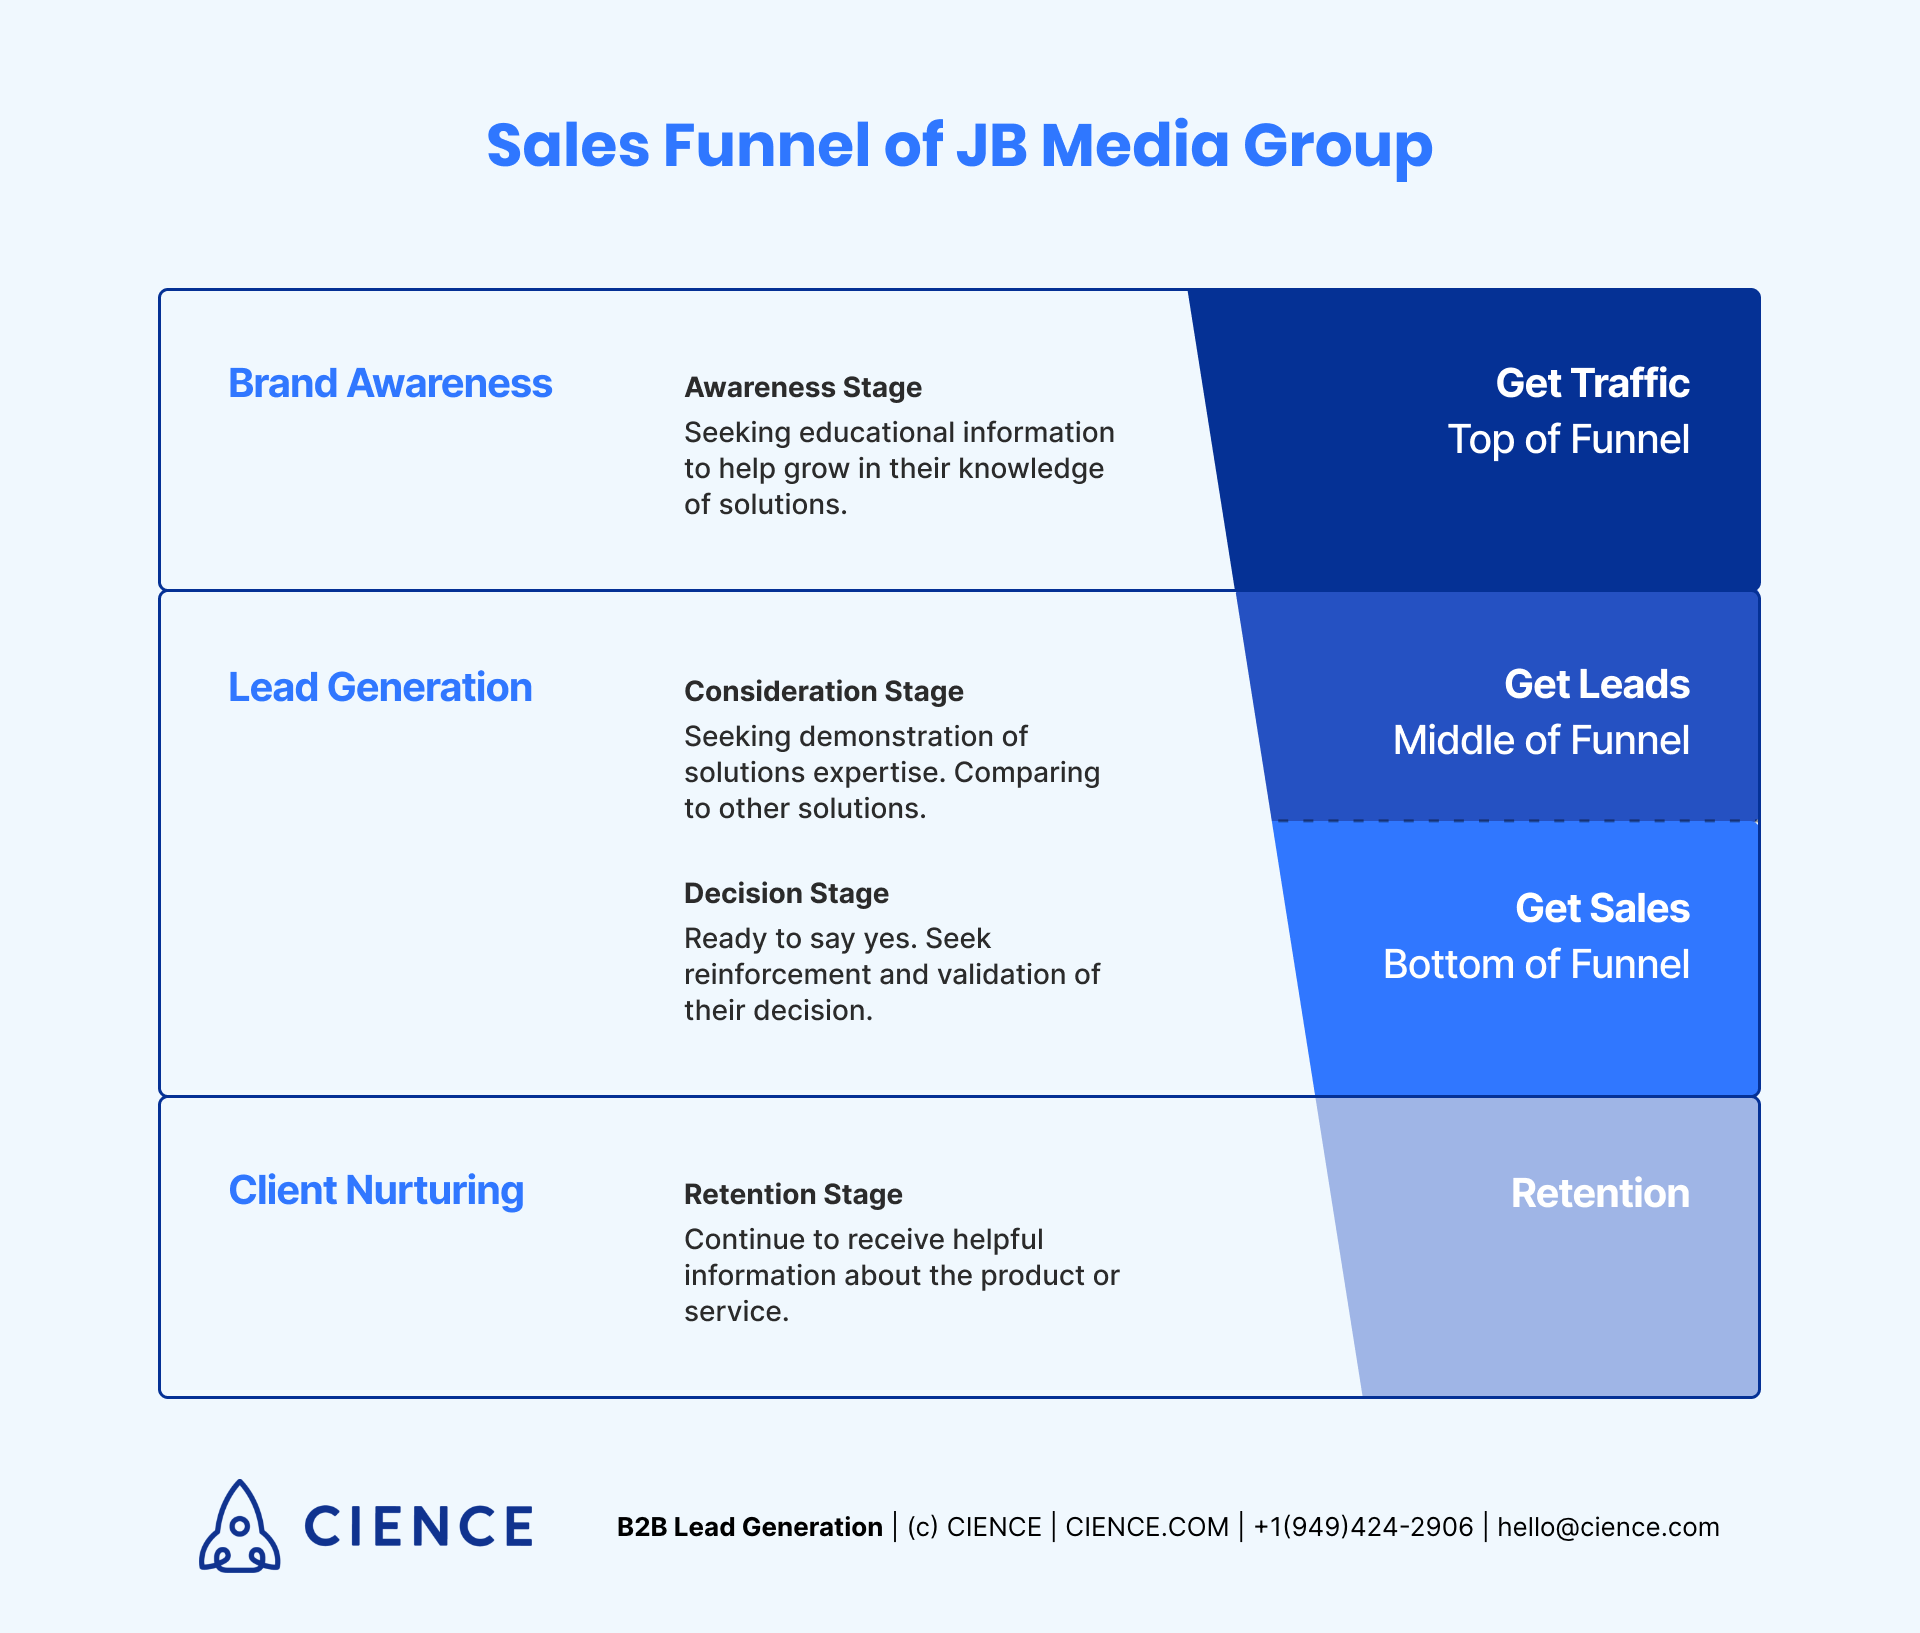 """JB Media Group's Sales Funnel Model"""" Brand Awareness, Lead Generation and Client Nurturing"""